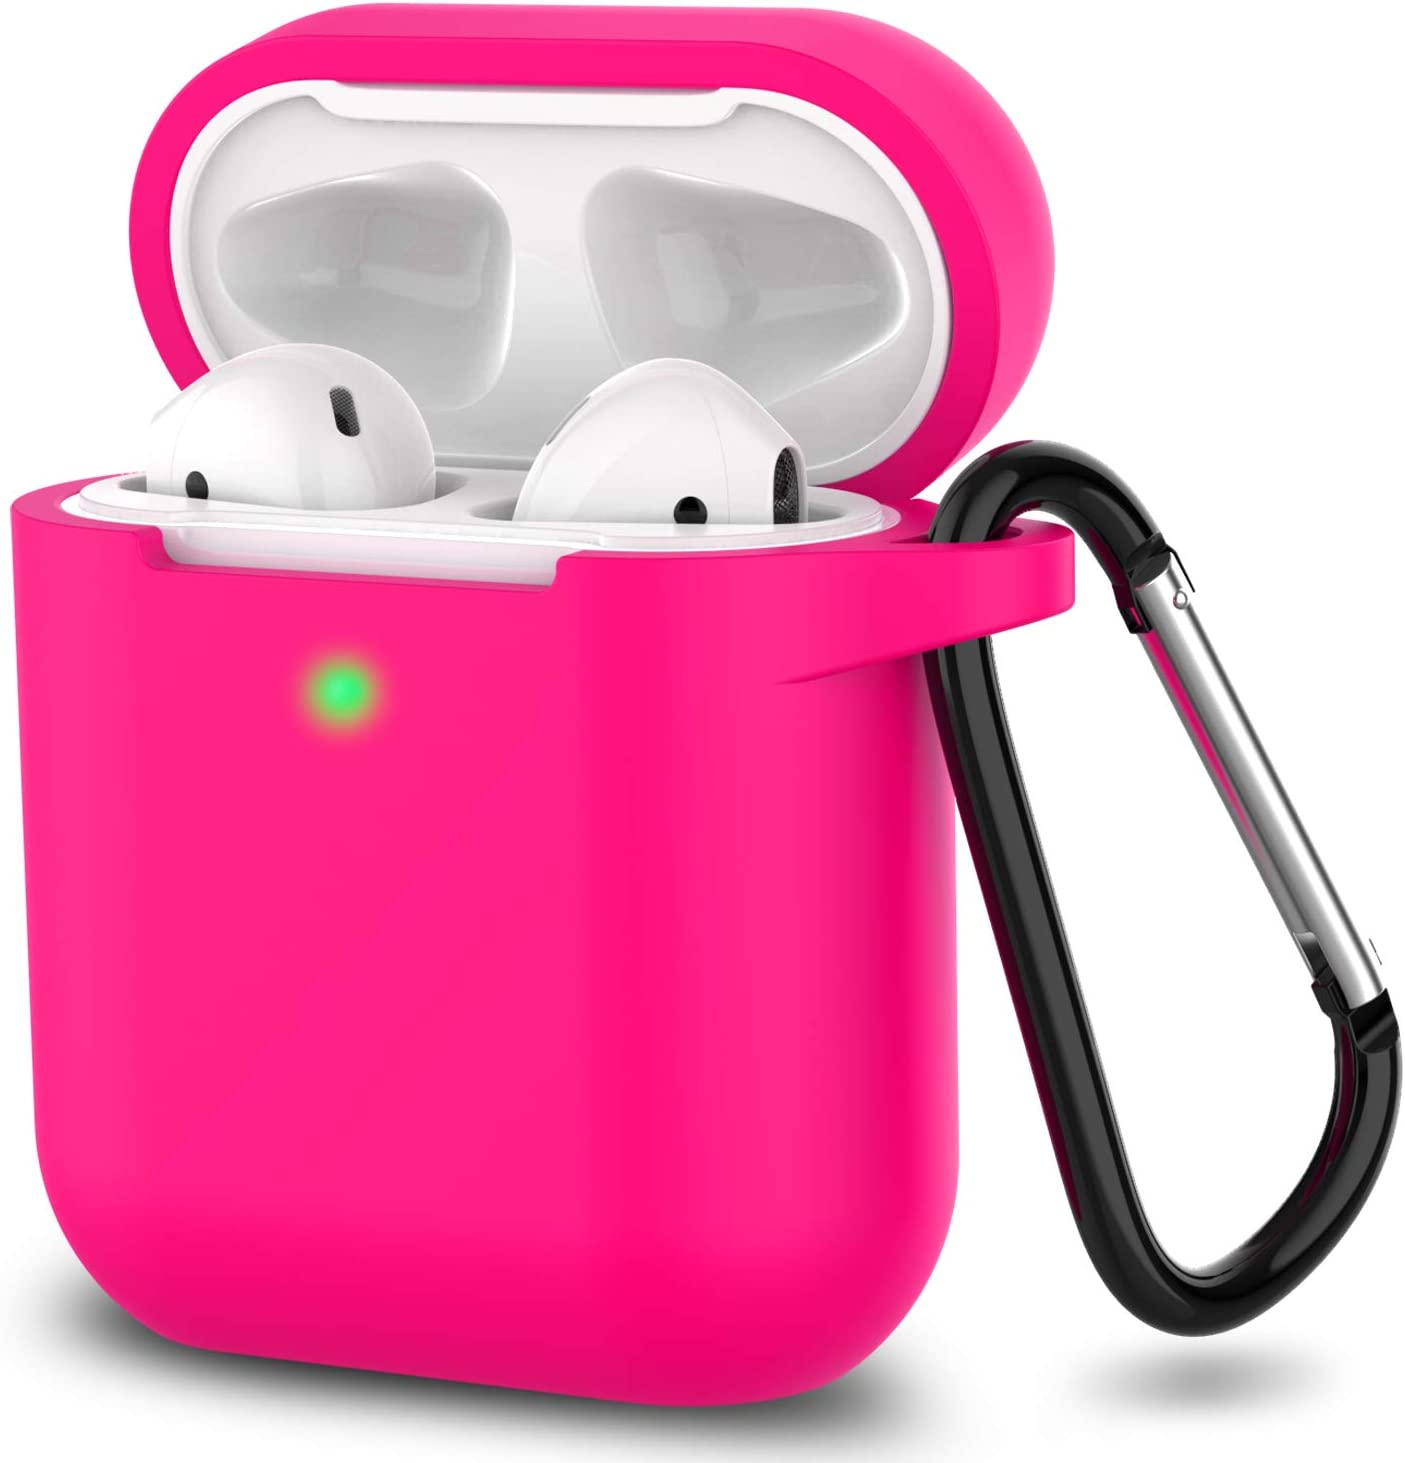 AirPods Case, Full Protective Silicone AirPods Accessories Cover Compatible with Apple AirPods 1&2 Wireless and Wired Charging Case(Front LED Visible),Rose Red